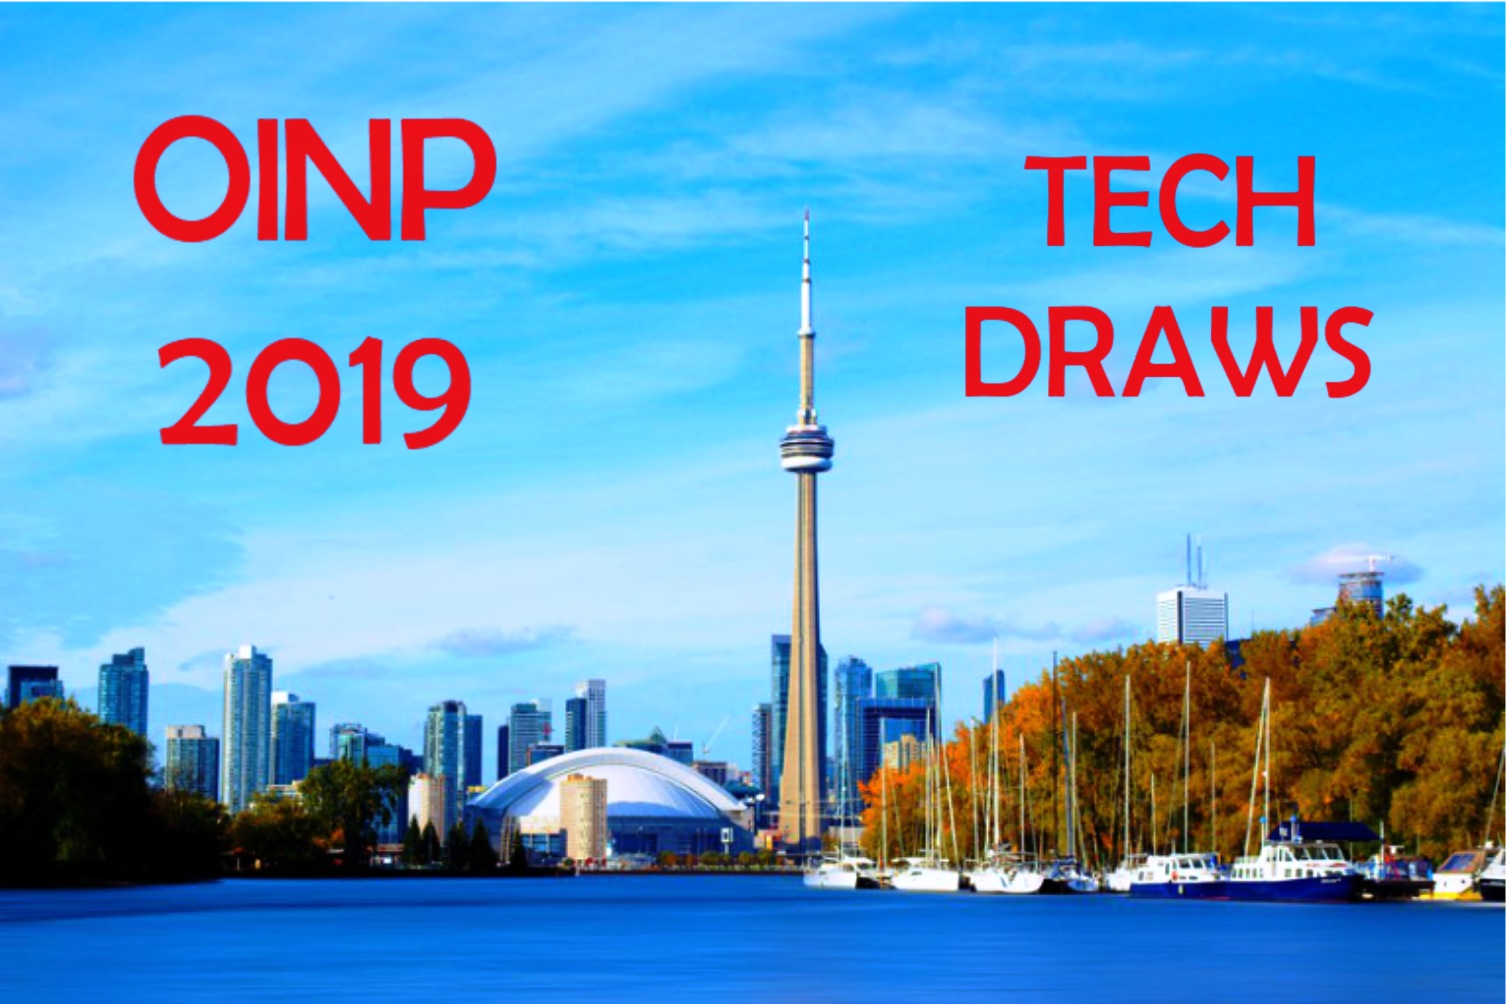 Ontario PNP 2019 Tech Draws | OINP Invites For IT Industry